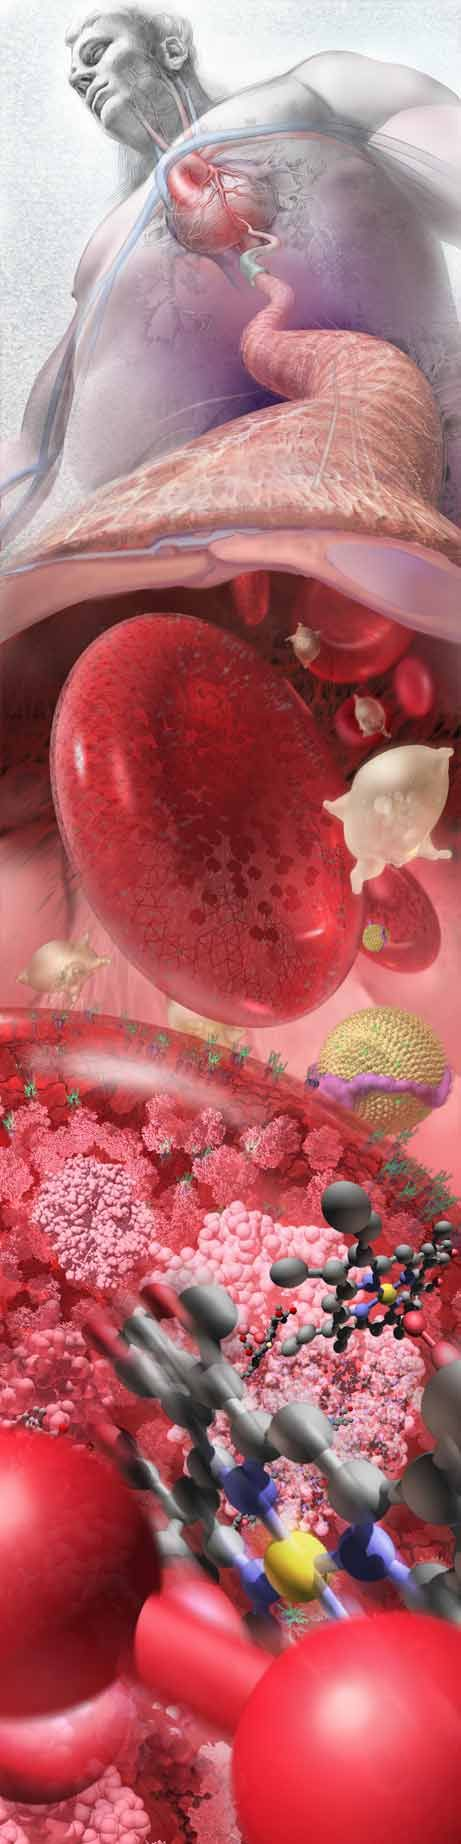 "First Place in Illustration category of 2008 International Science and Engineering Visualization Challenge:  ""Zoom Into The Human Bloodstream"" by Linda Nye"